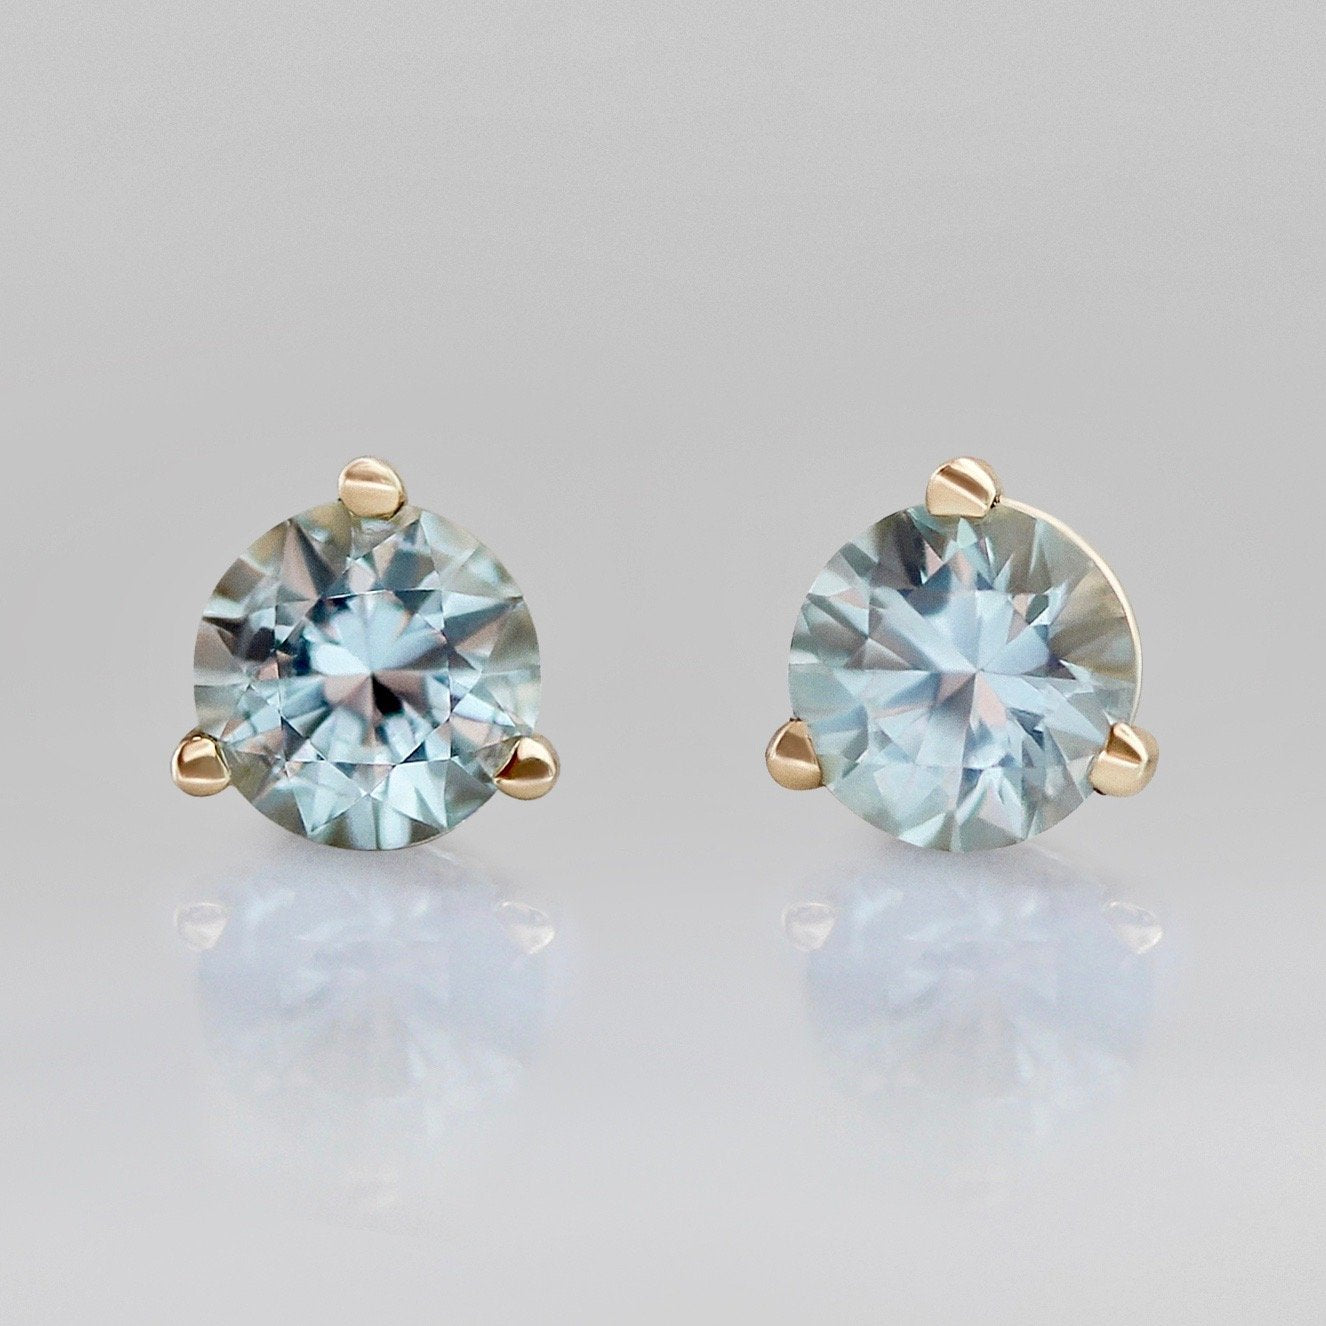 Gem Breakfast Bespoke Earrings .82 Carats Total Round Cut Teal Montana Sapphire Earrings